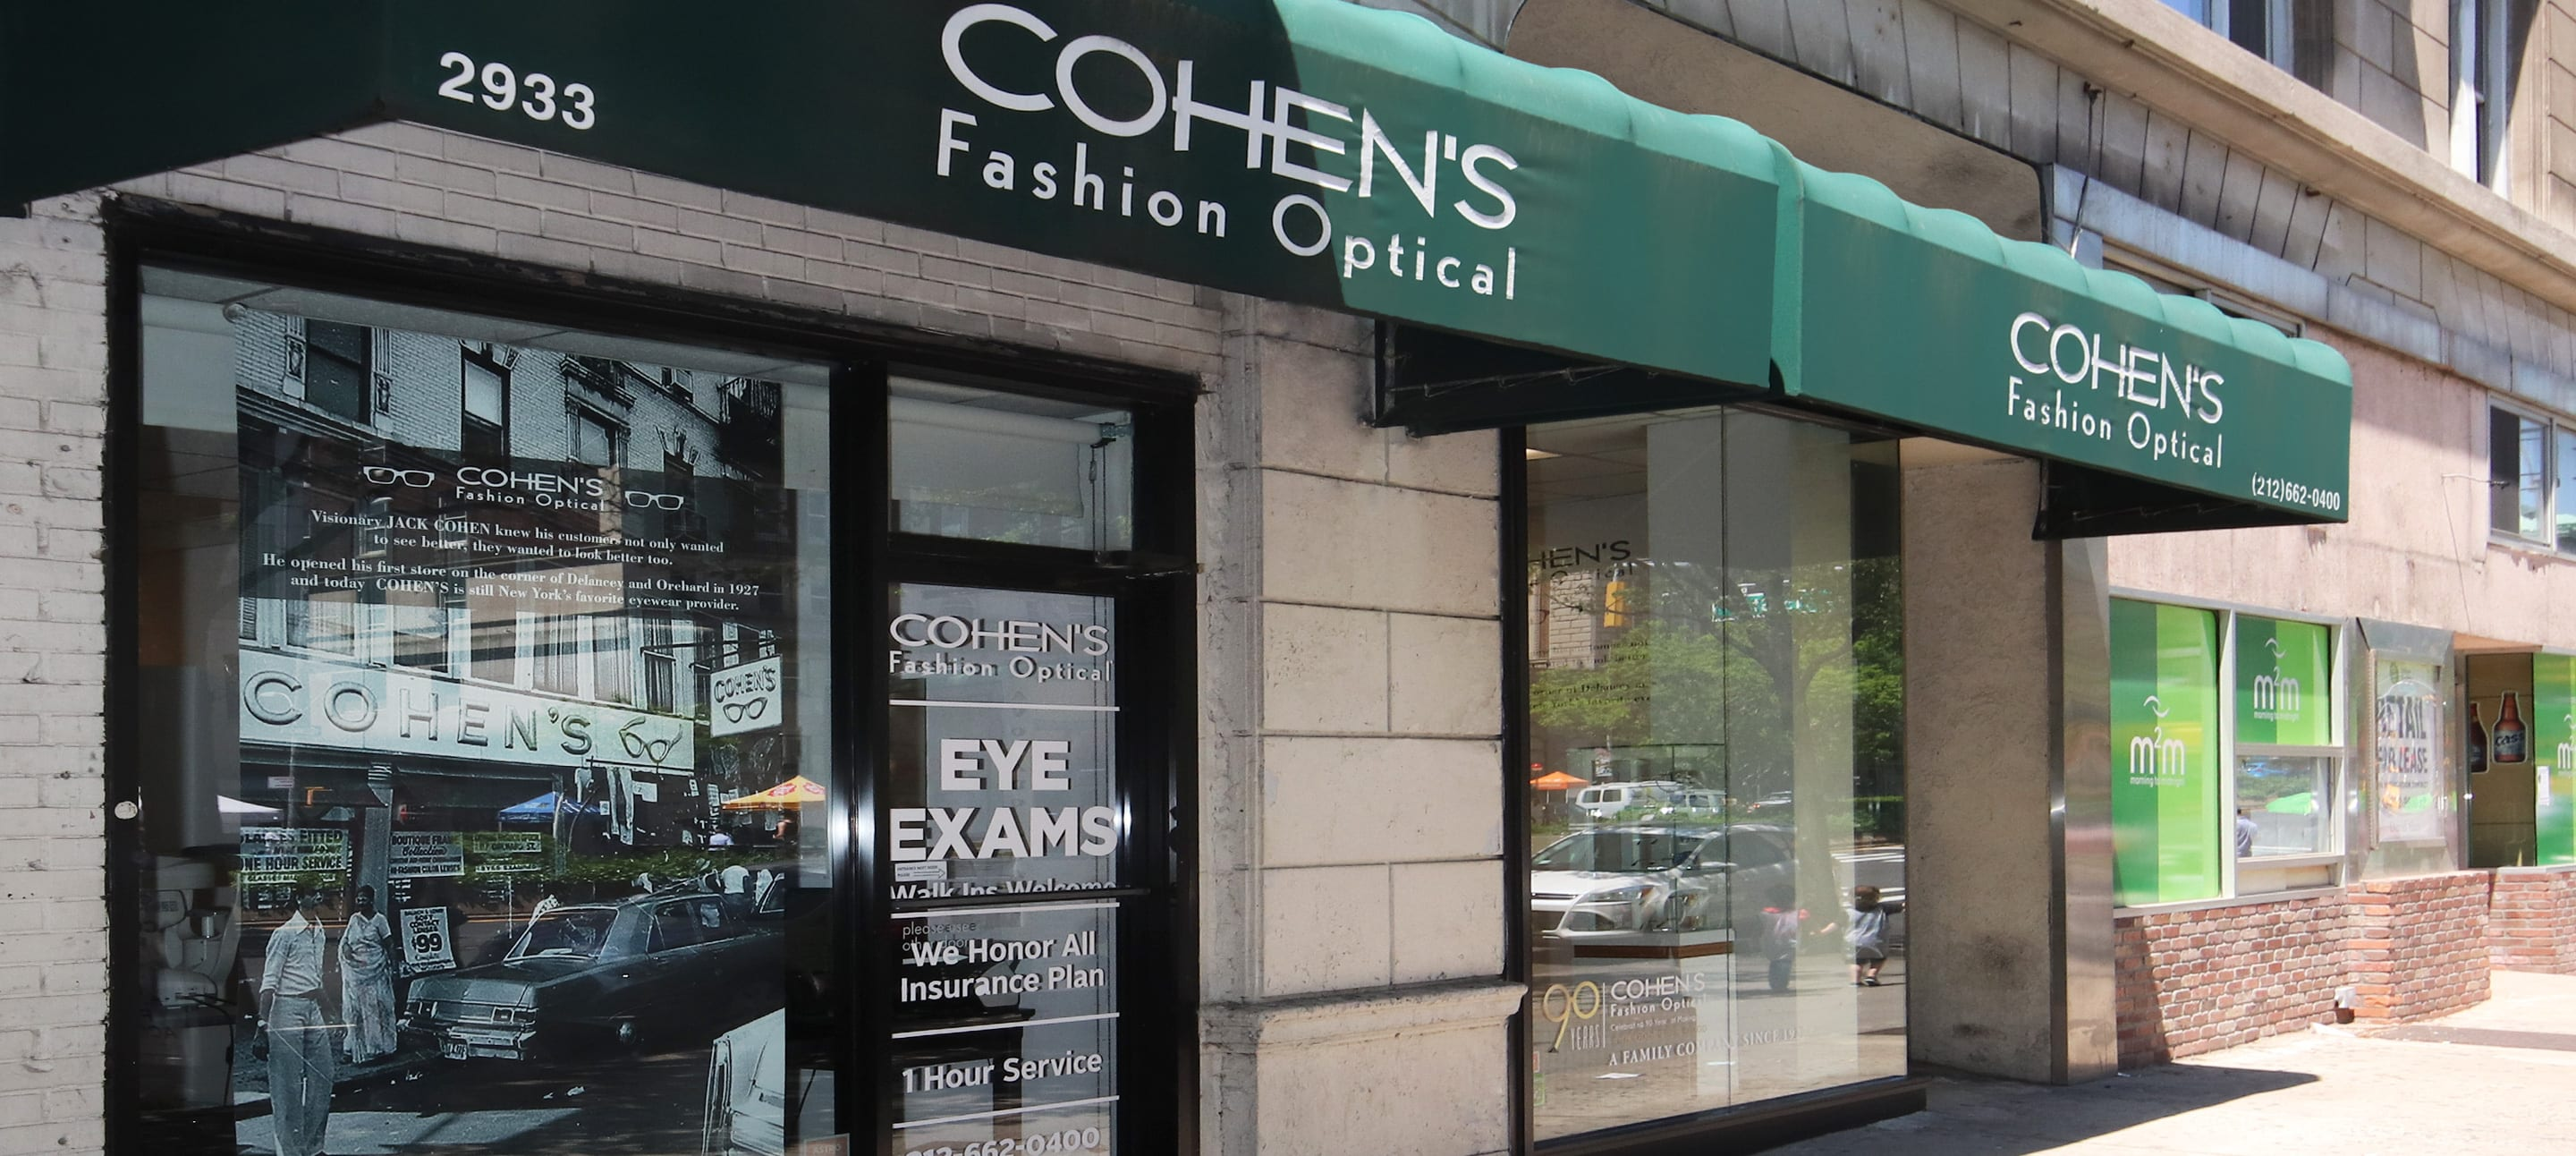 Eyeglasses Amp Eye Exams 2933 Broadway New York Nycohen S